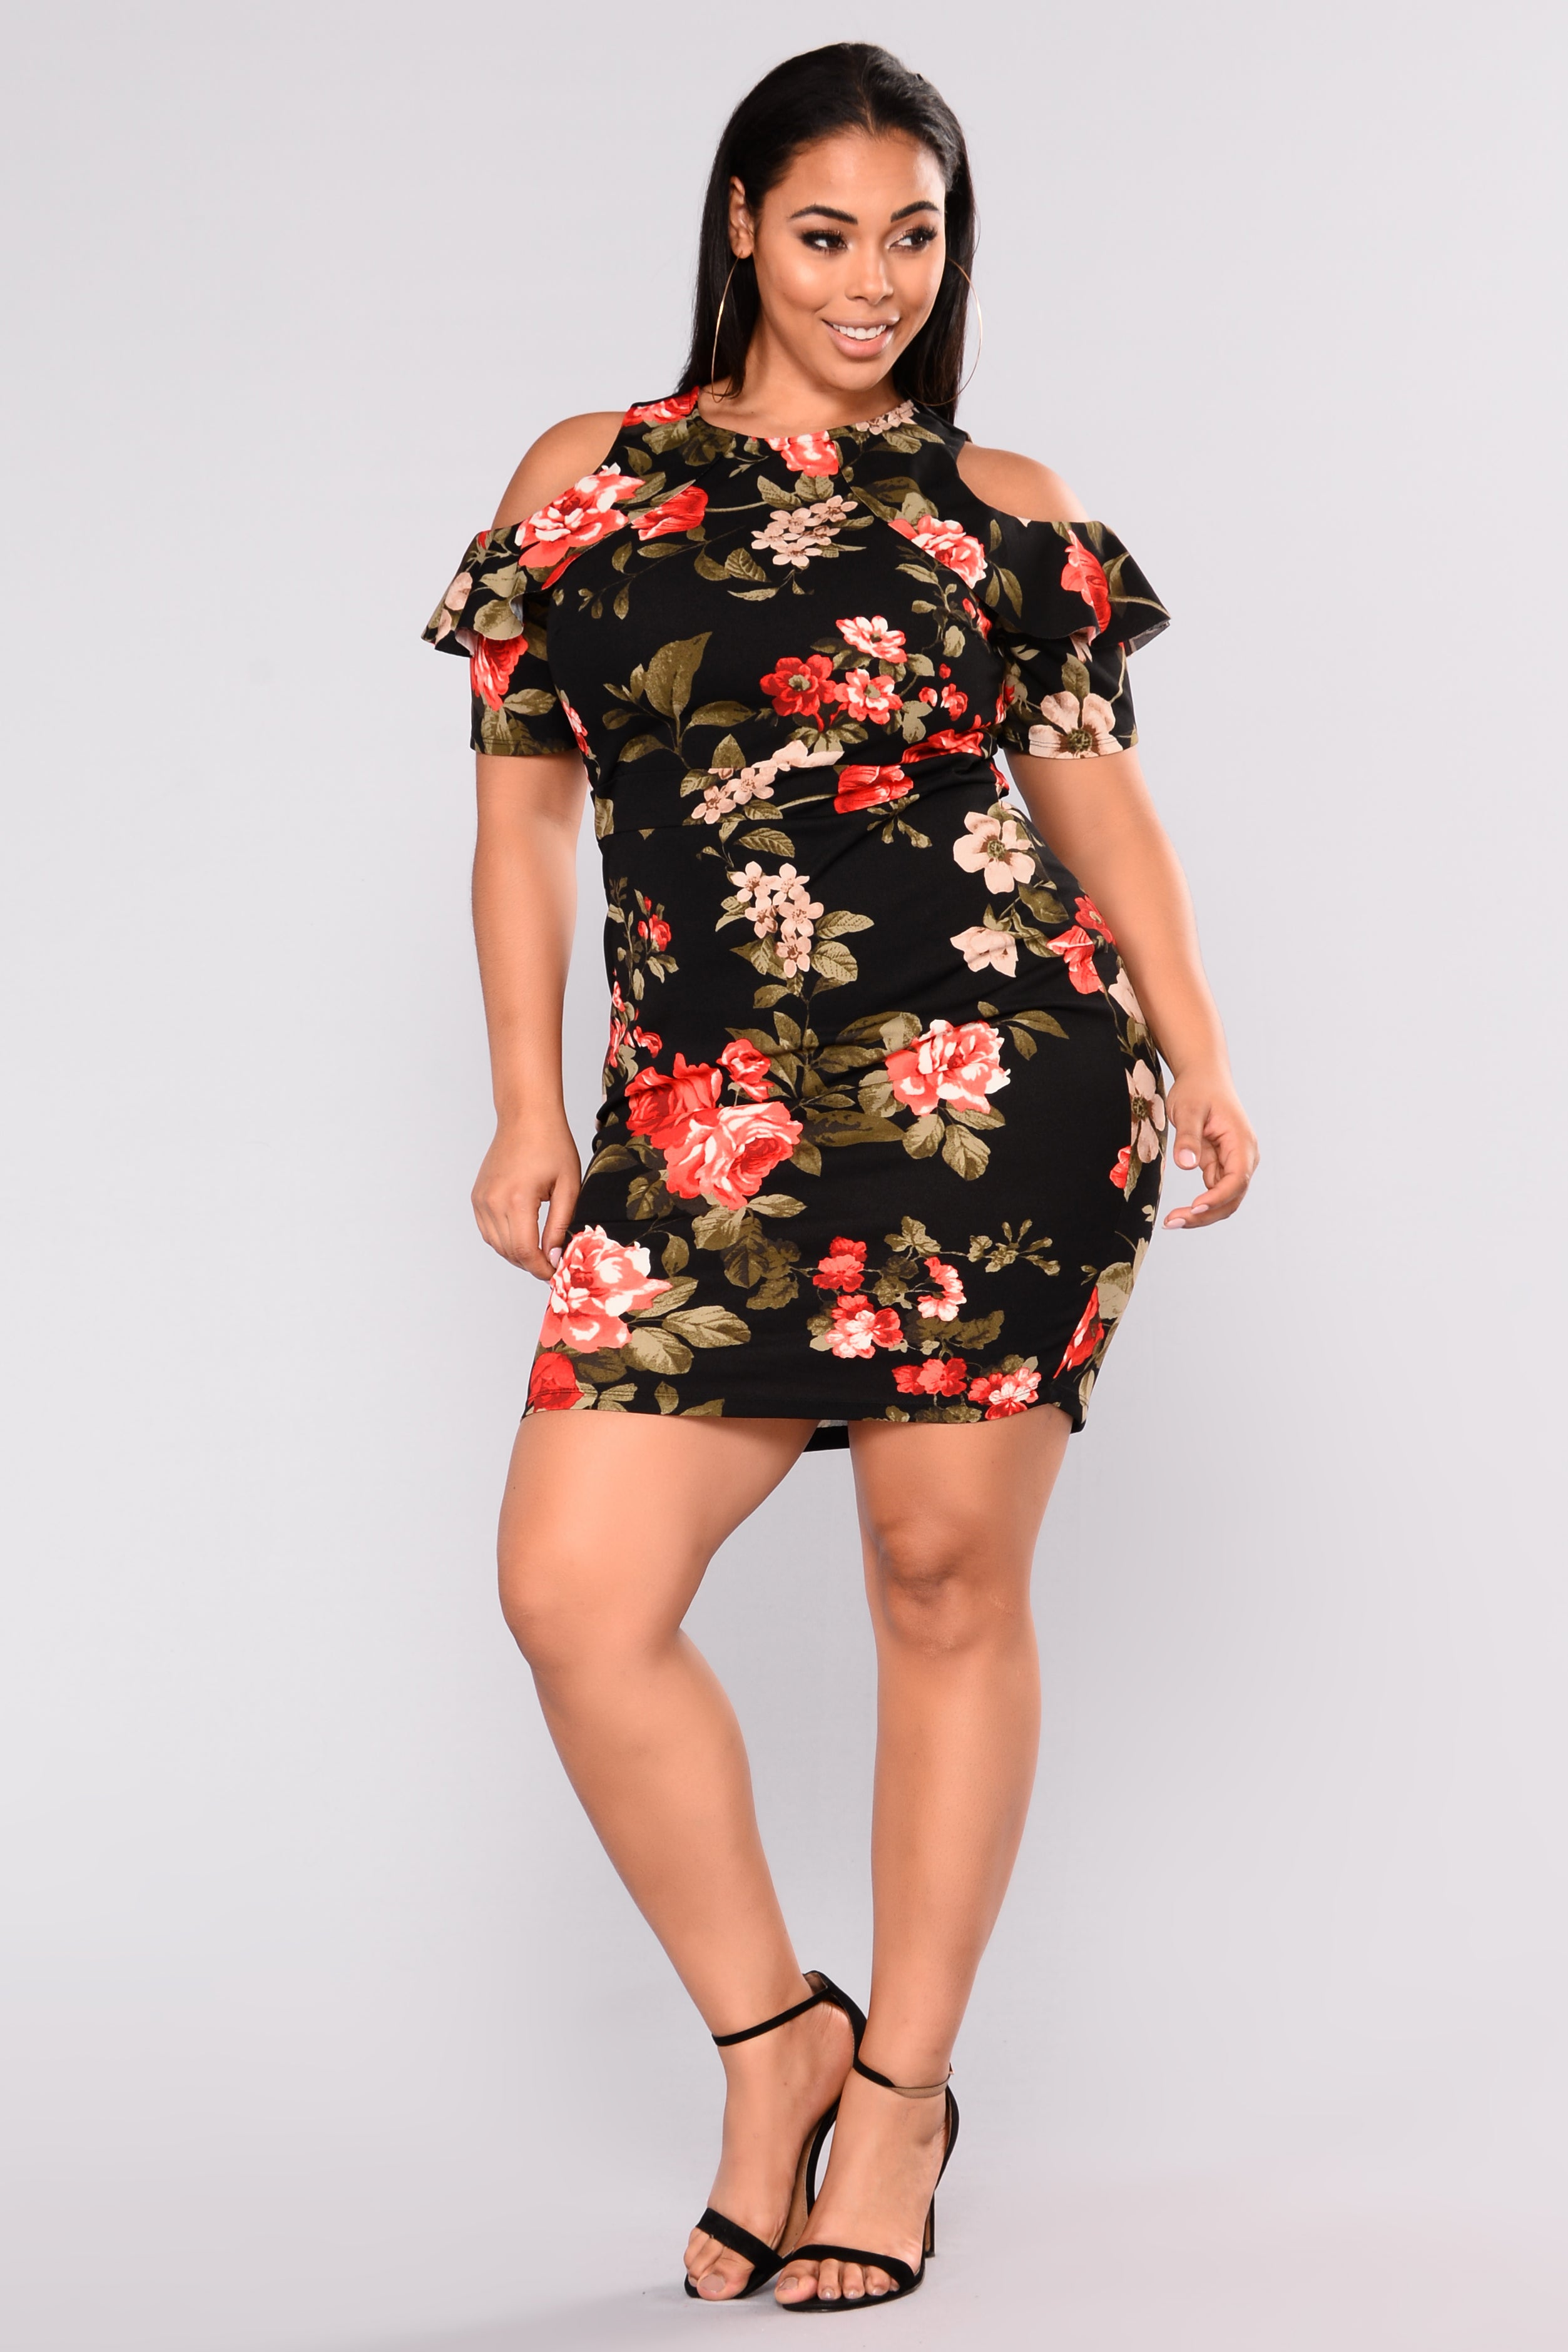 https   www.fashionnova.com products cared-for-you-dress-black-floral ... 273d9333be2